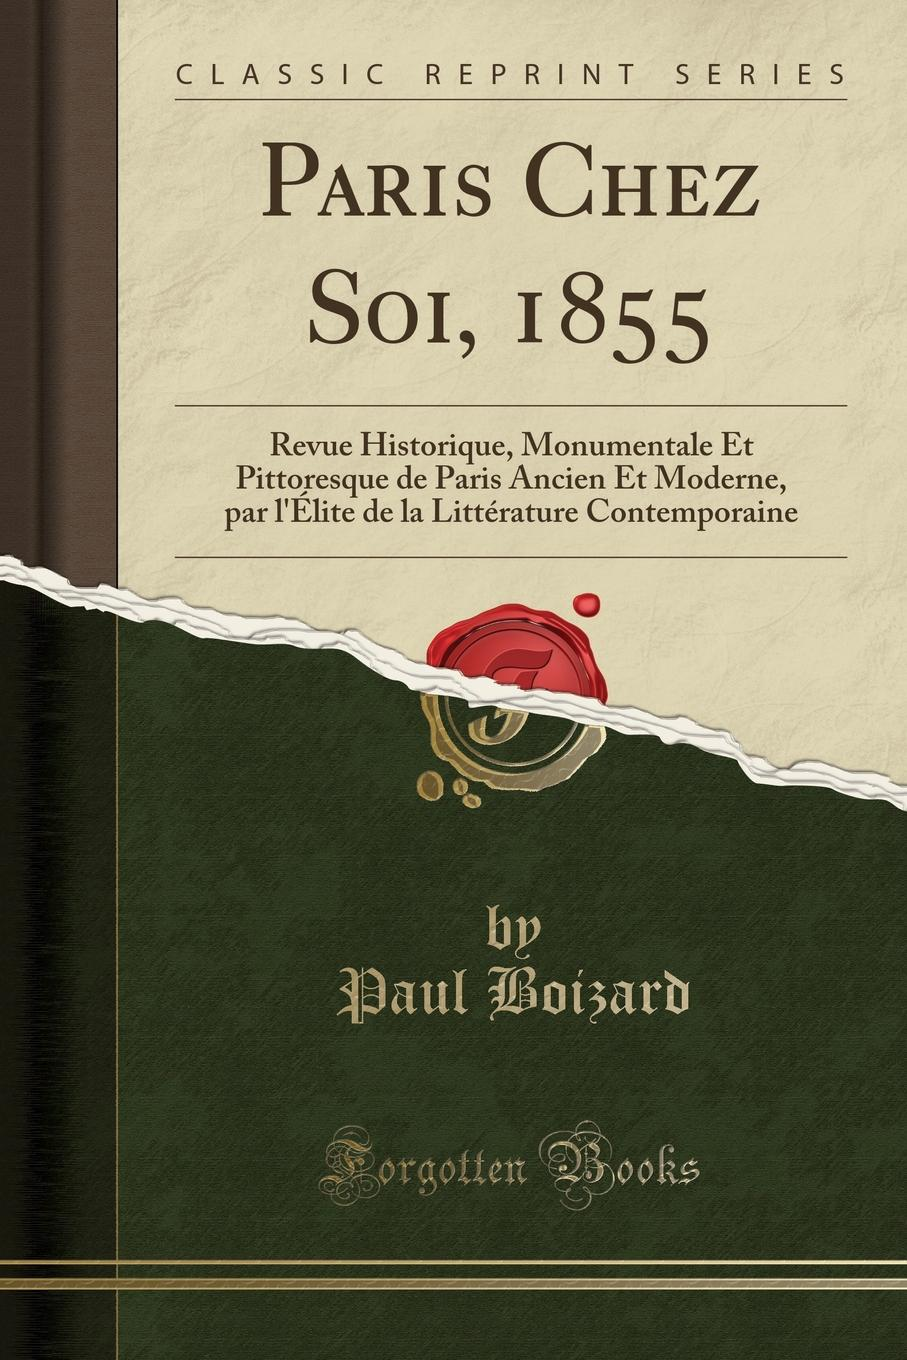 Paul Boizard Paris Chez Soi, 1855. Revue Historique, Monumentale Et Pittoresque de Paris Ancien Et Moderne, par l.Elite de la Litterature Contemporaine (Classic Reprint)